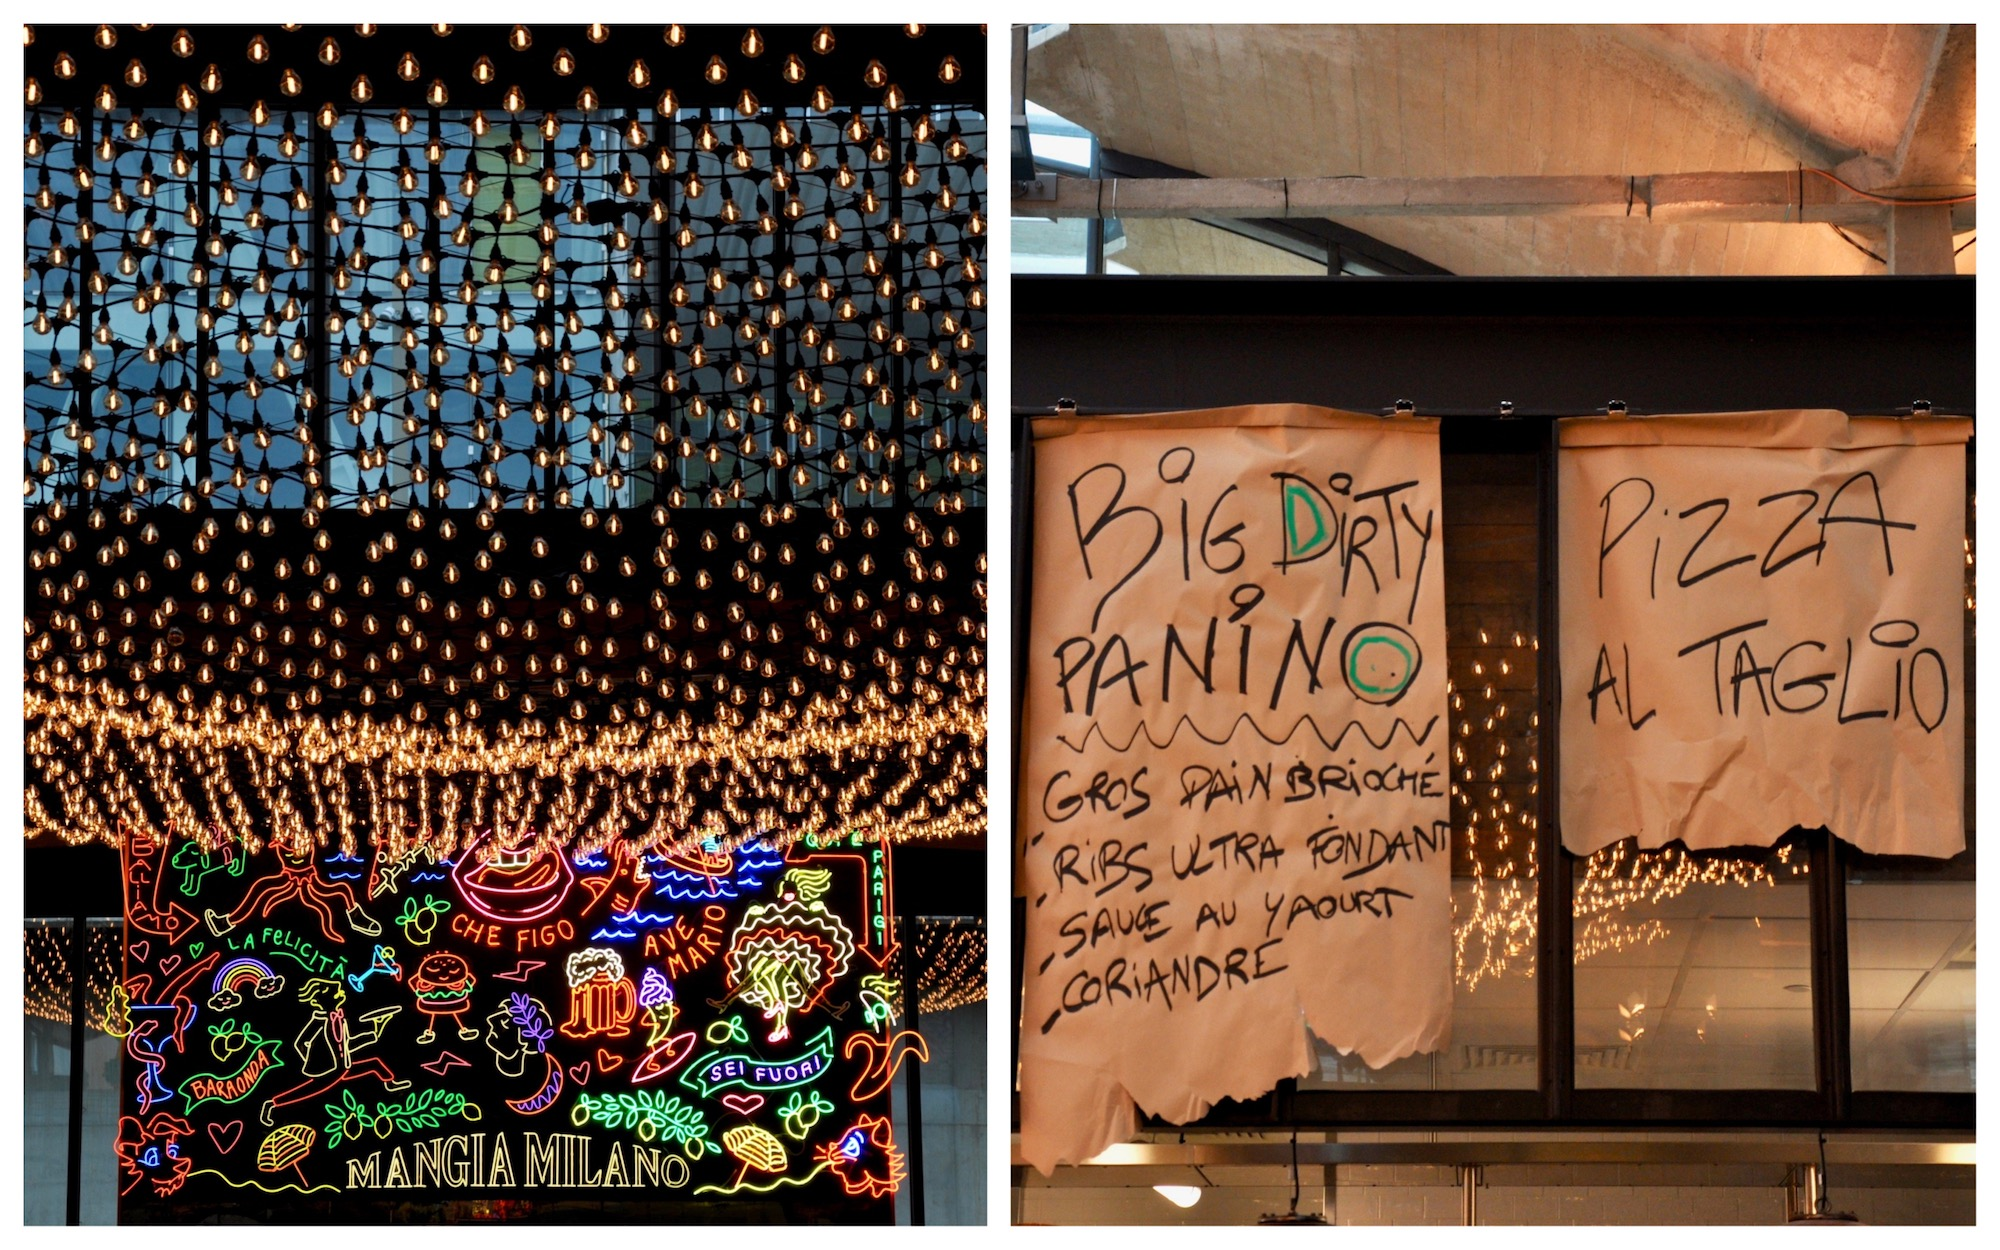 Paris restaurant, Big Mamma Group's La Felicita serves affordable Italian fare in fun surroundings lit up by fairylights and neon signs (left).The day's specials handwritten on paper (right).